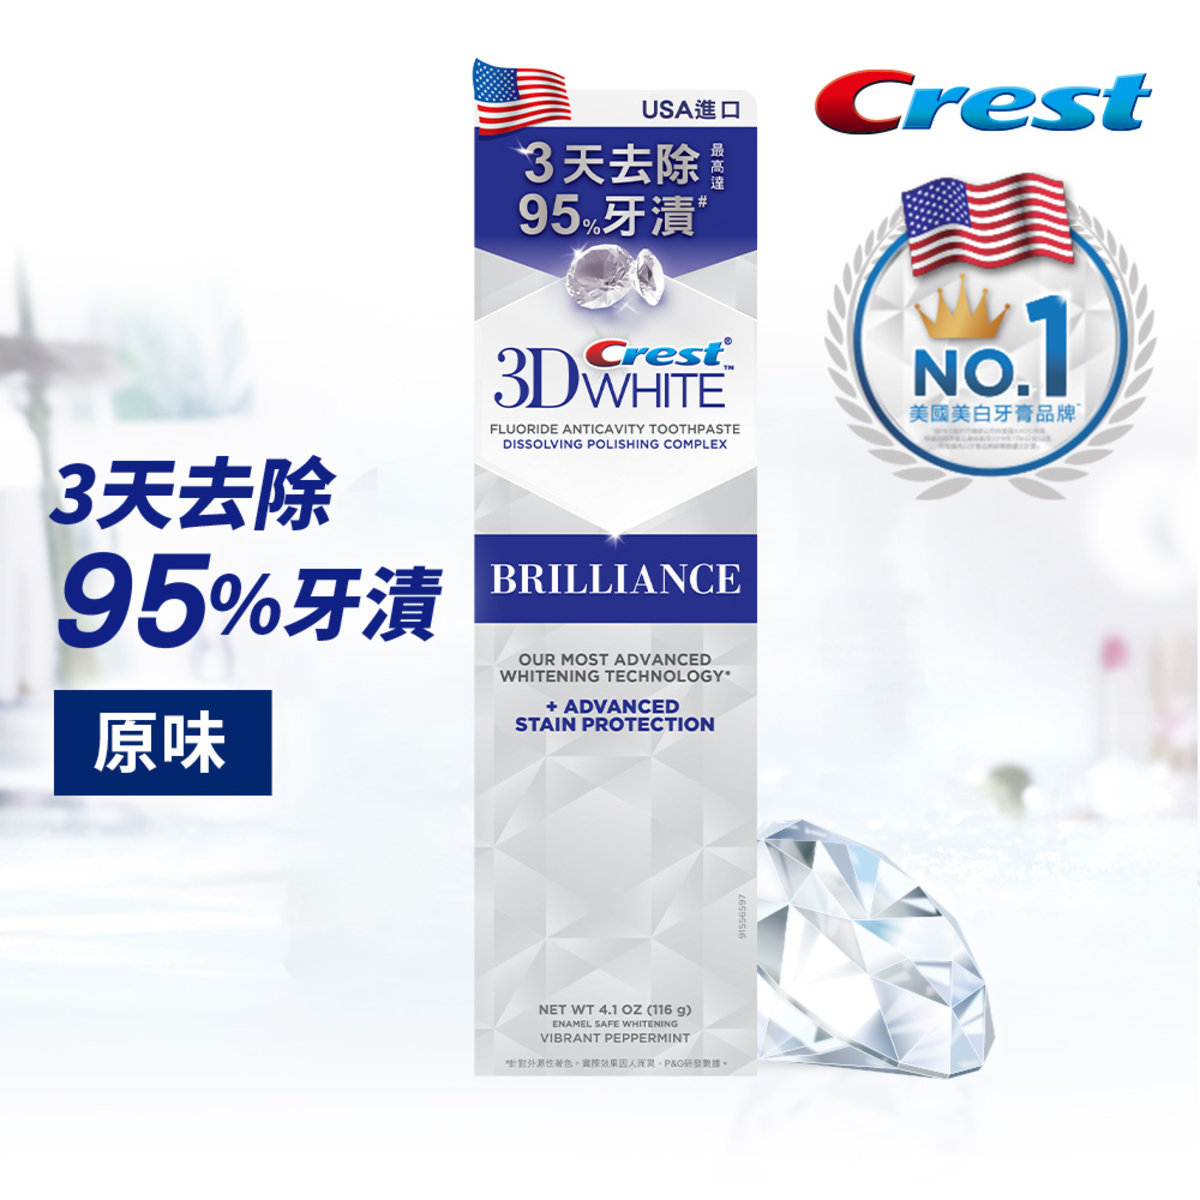 3D White Brilliance Toothpaste